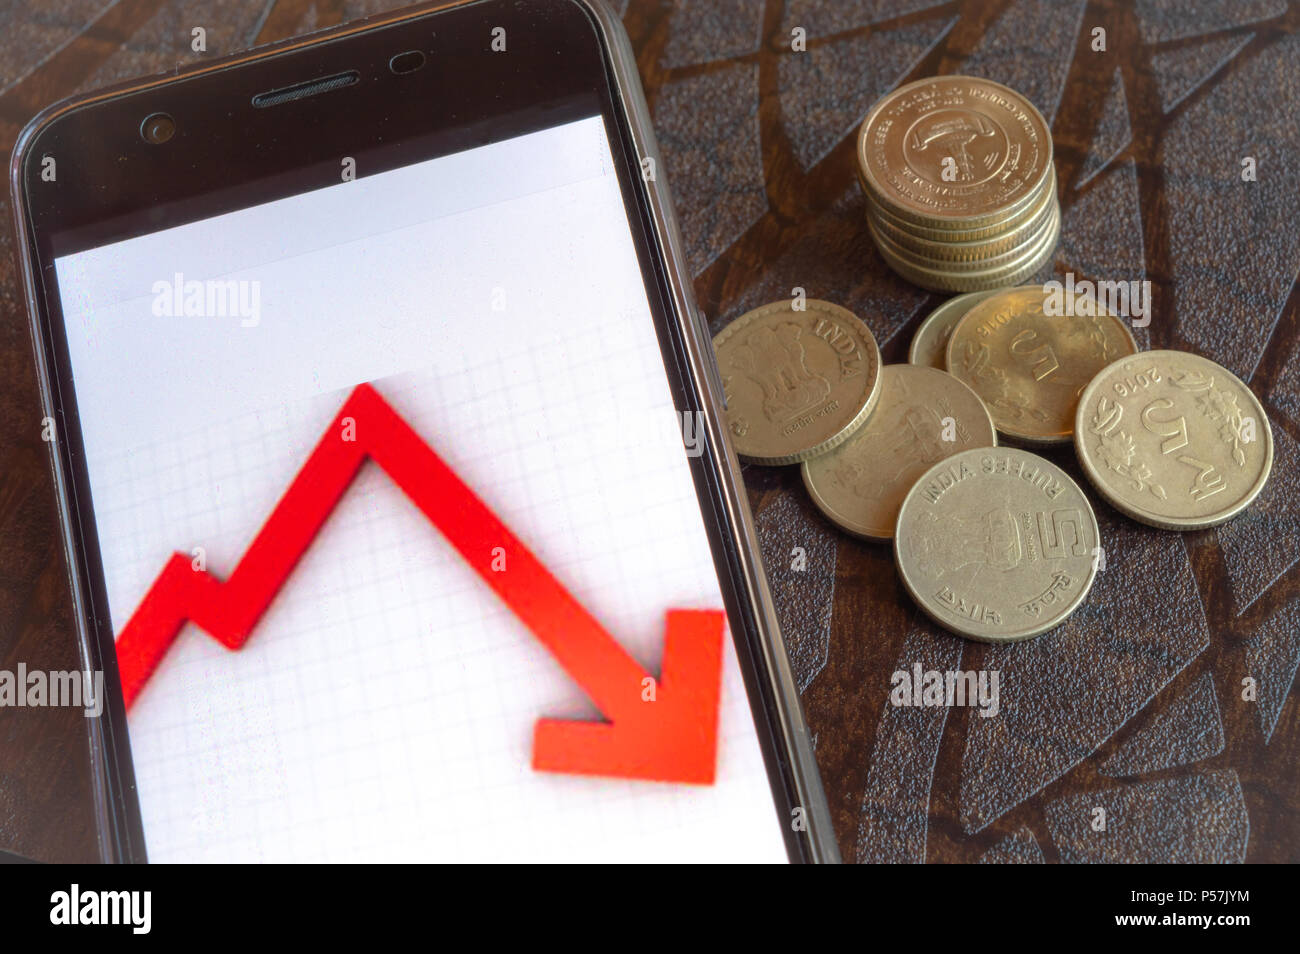 Stock market crashes and very less returns from shares - Stock Image